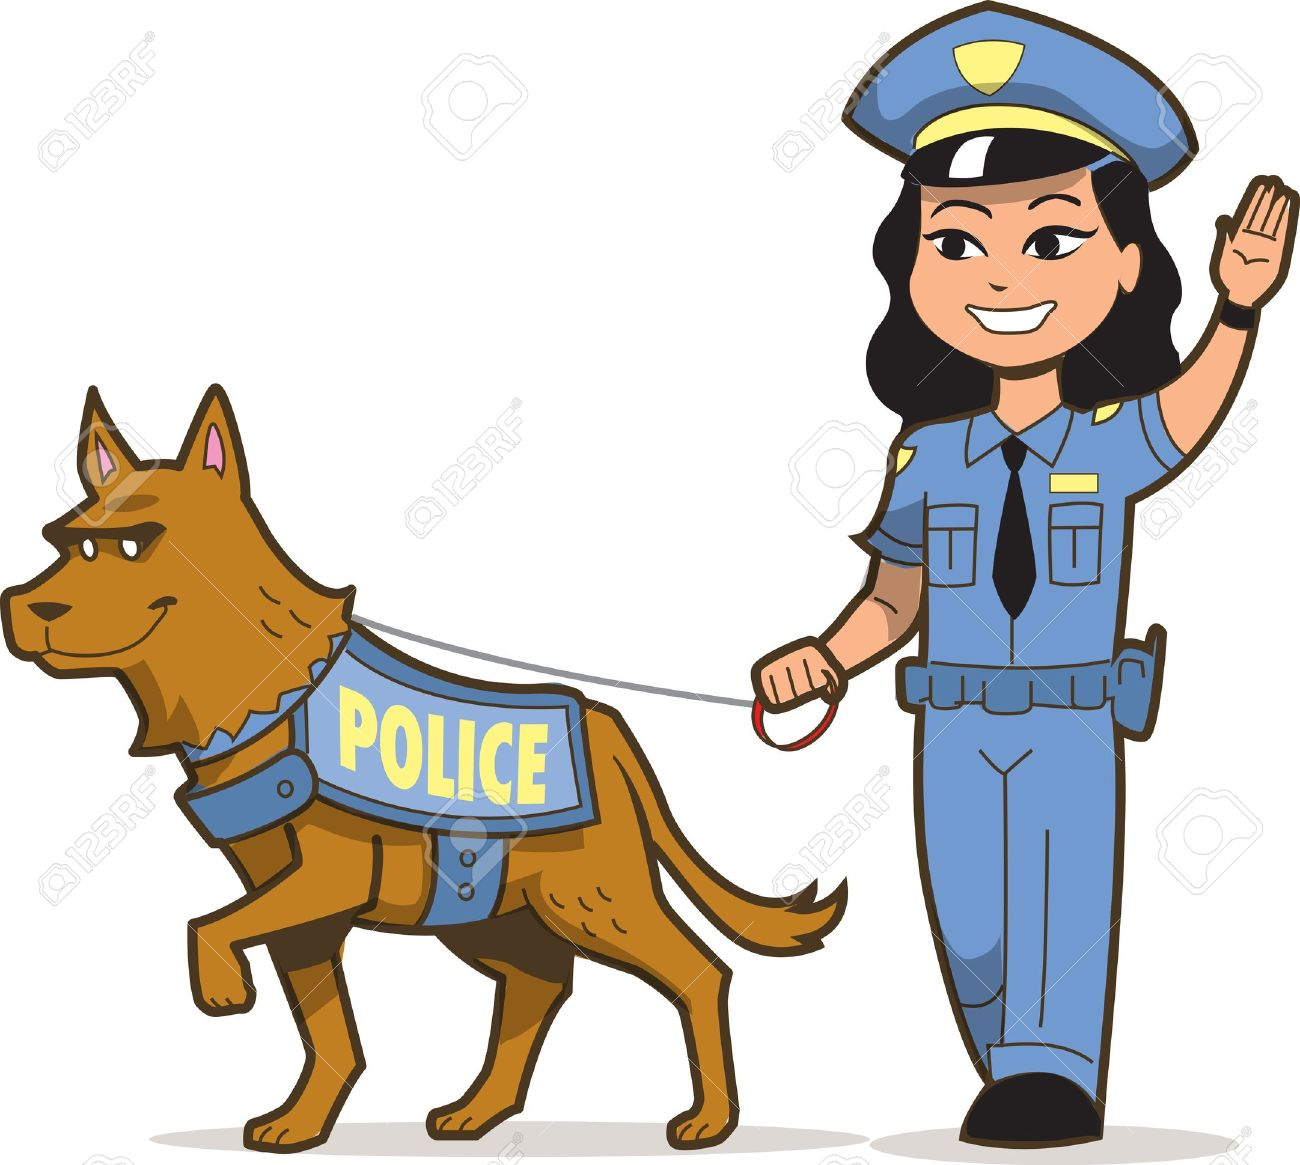 2345 Police Officer free clipart.